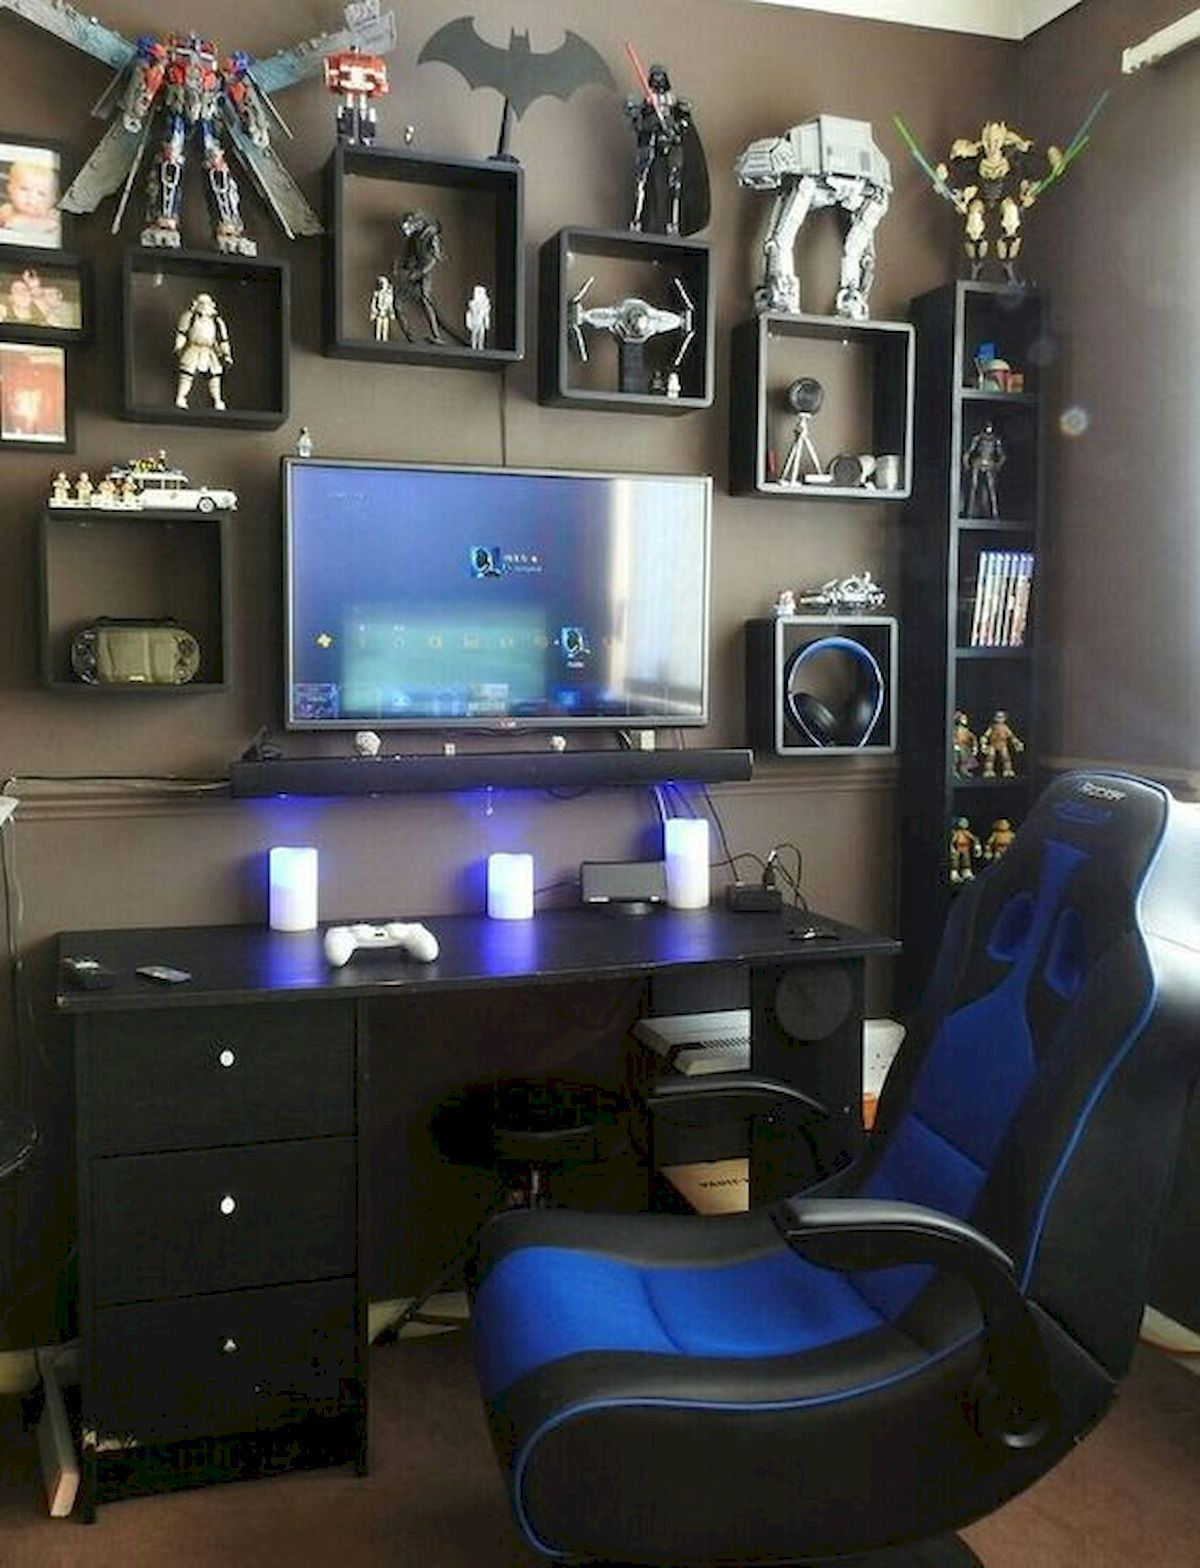 45 Fantastic Computer Gaming Room Decor Ideas And Design 1 Game